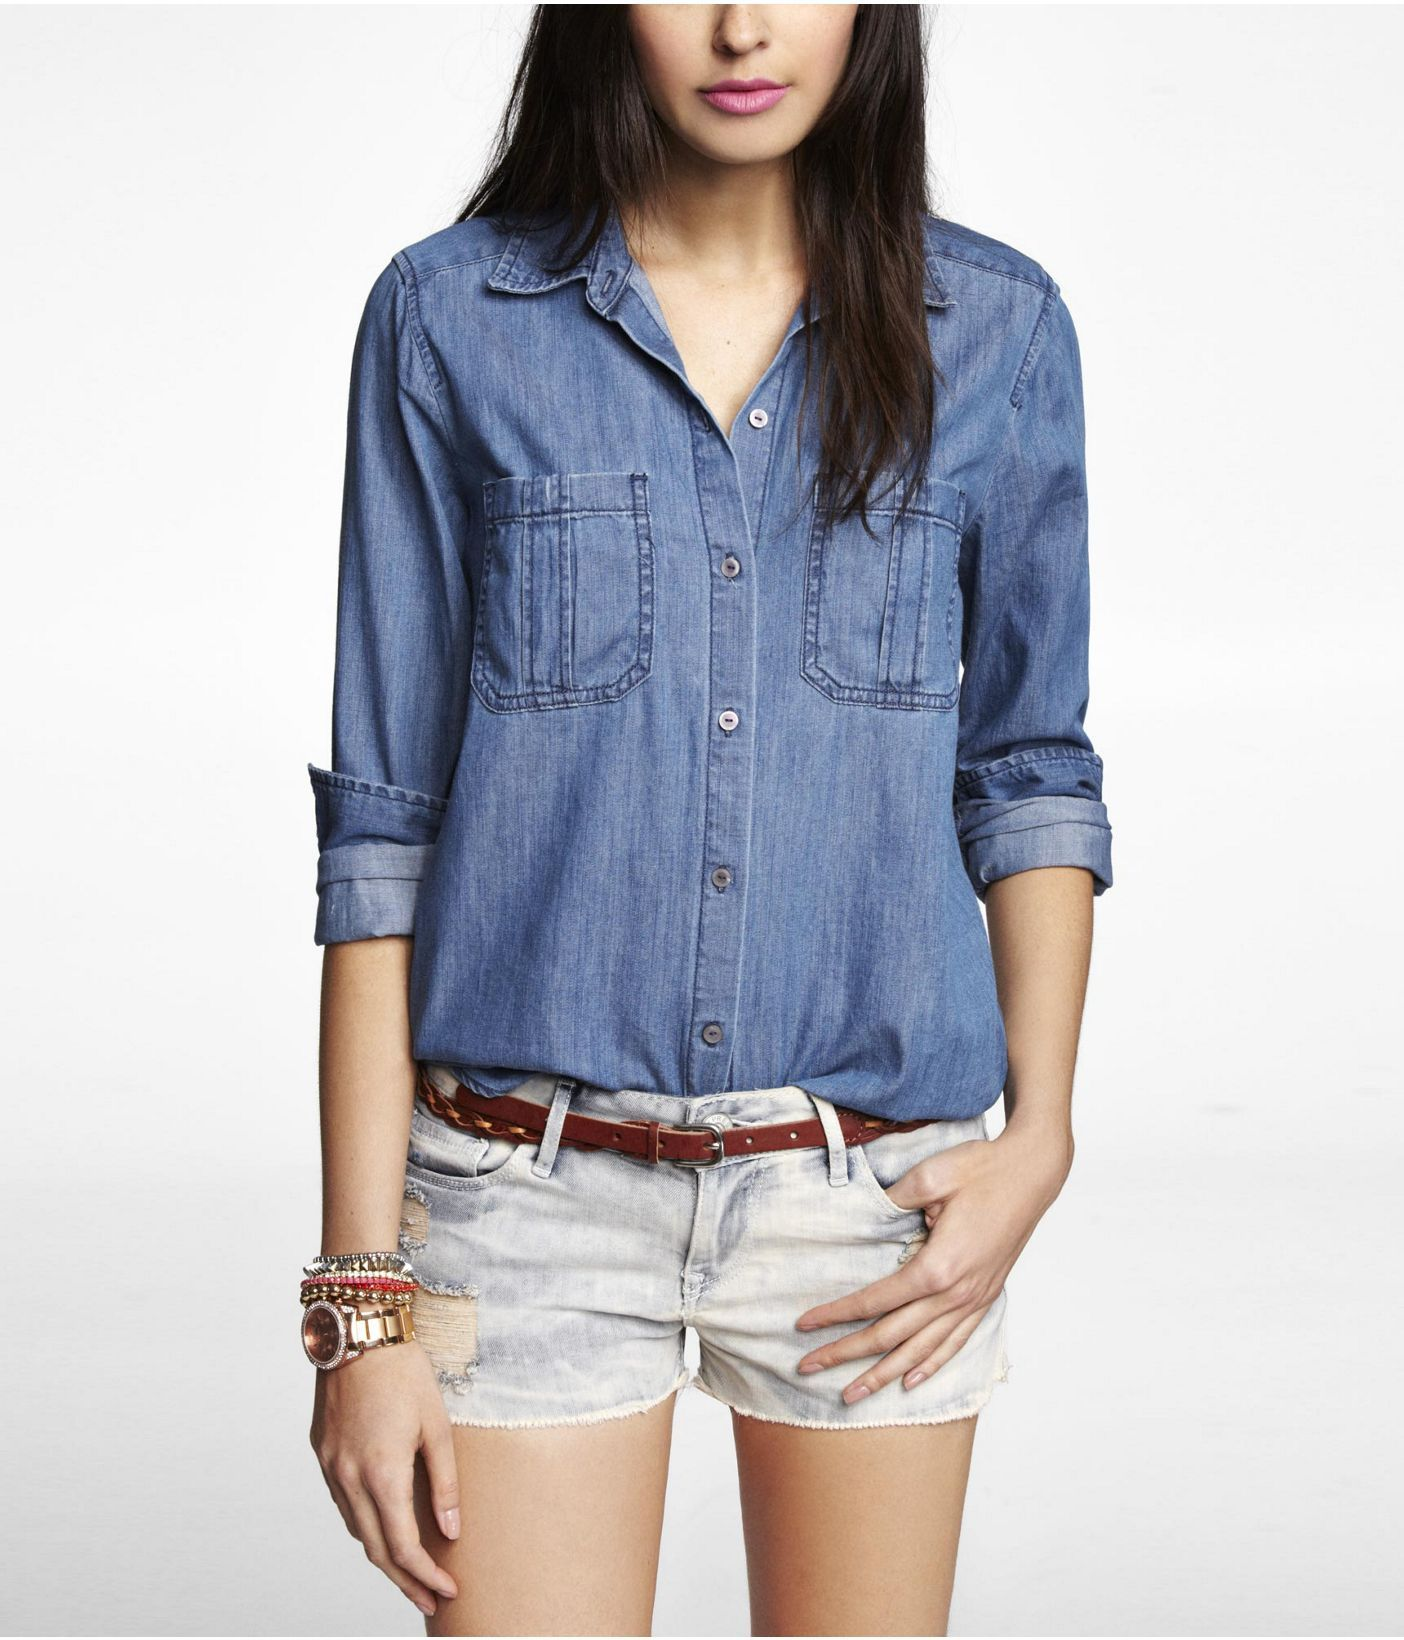 DARK WASH DENIM SHIRT | Express